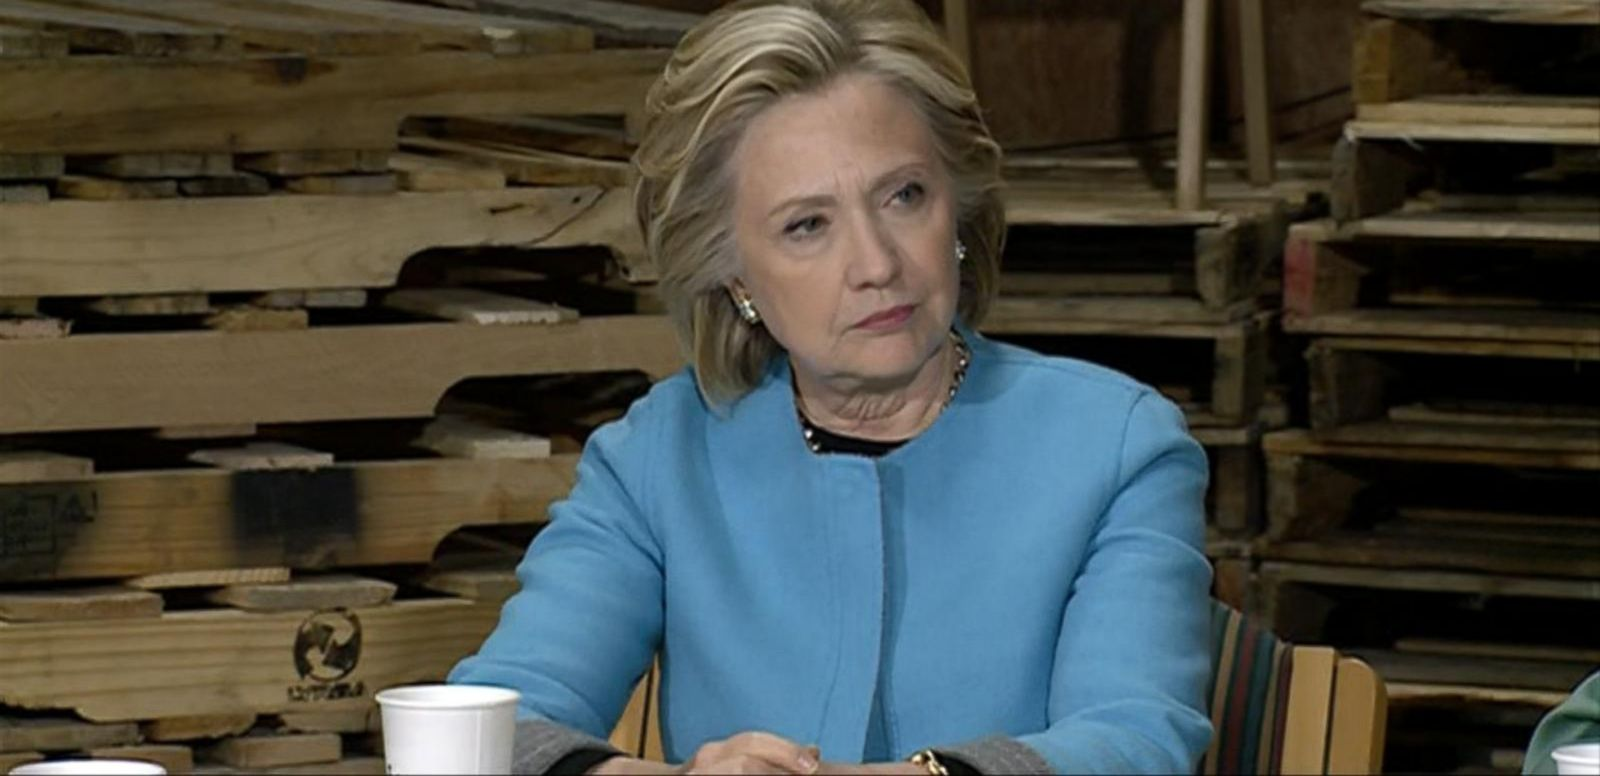 VIDEO: Hillary Clinton Dodges Question About 'Clinton Cash' Book